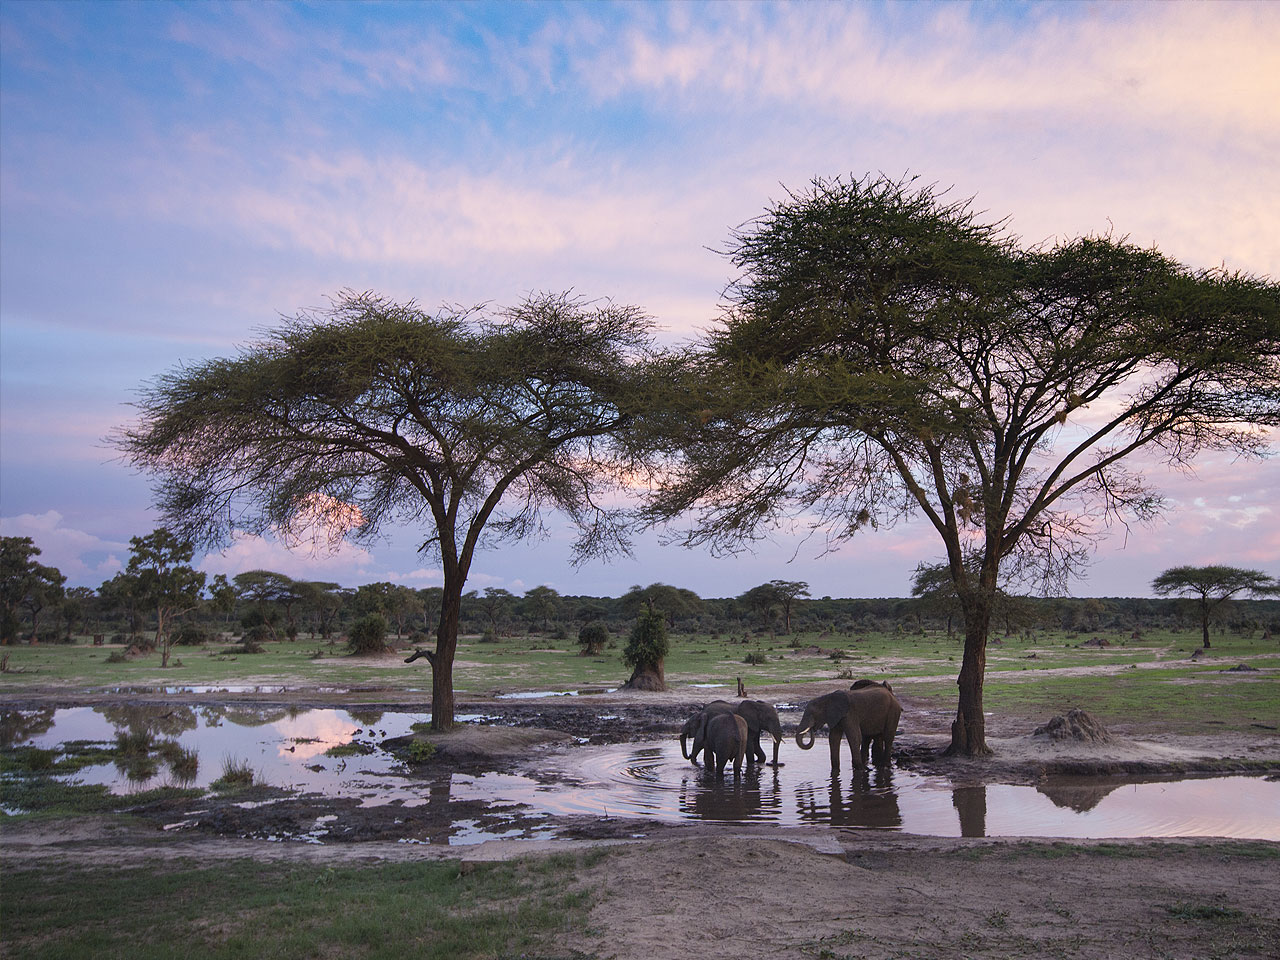 Elephants playing in the water beneath trees with a typical Zimbabwe landscape in the background.